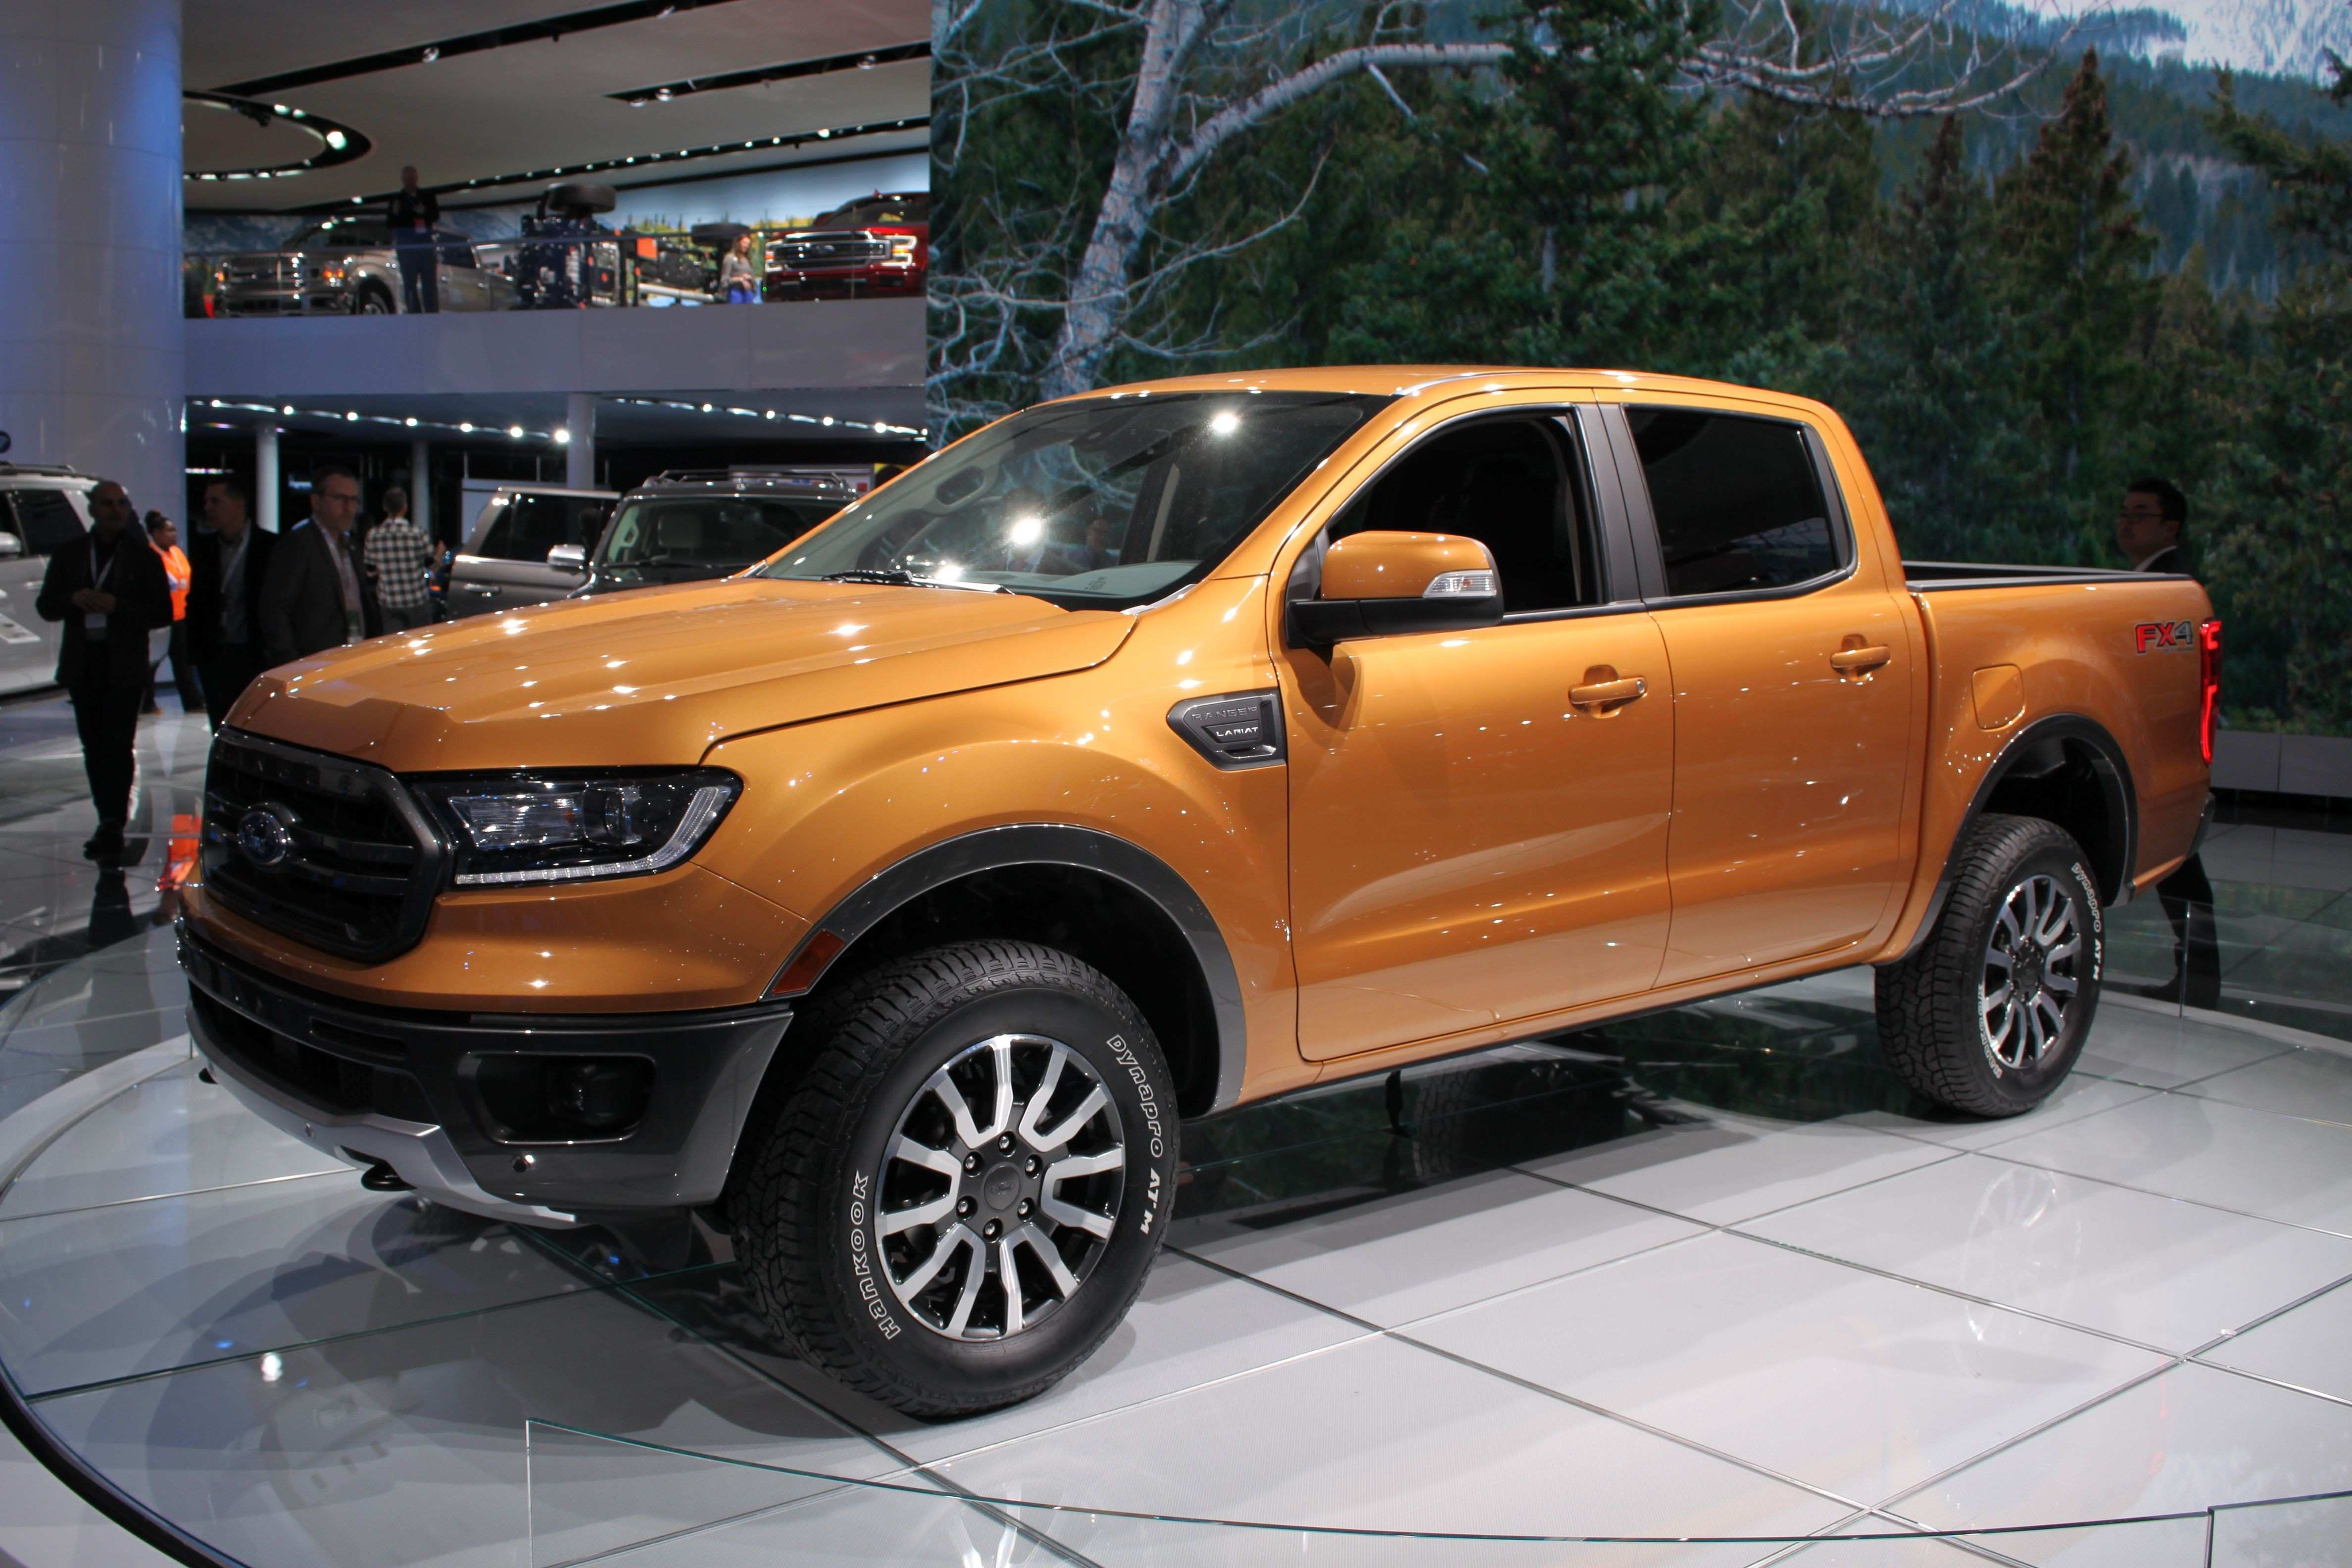 40 Gallery of Best 2019 Mazda Truck Usa First Drive Pricing with Best 2019 Mazda Truck Usa First Drive